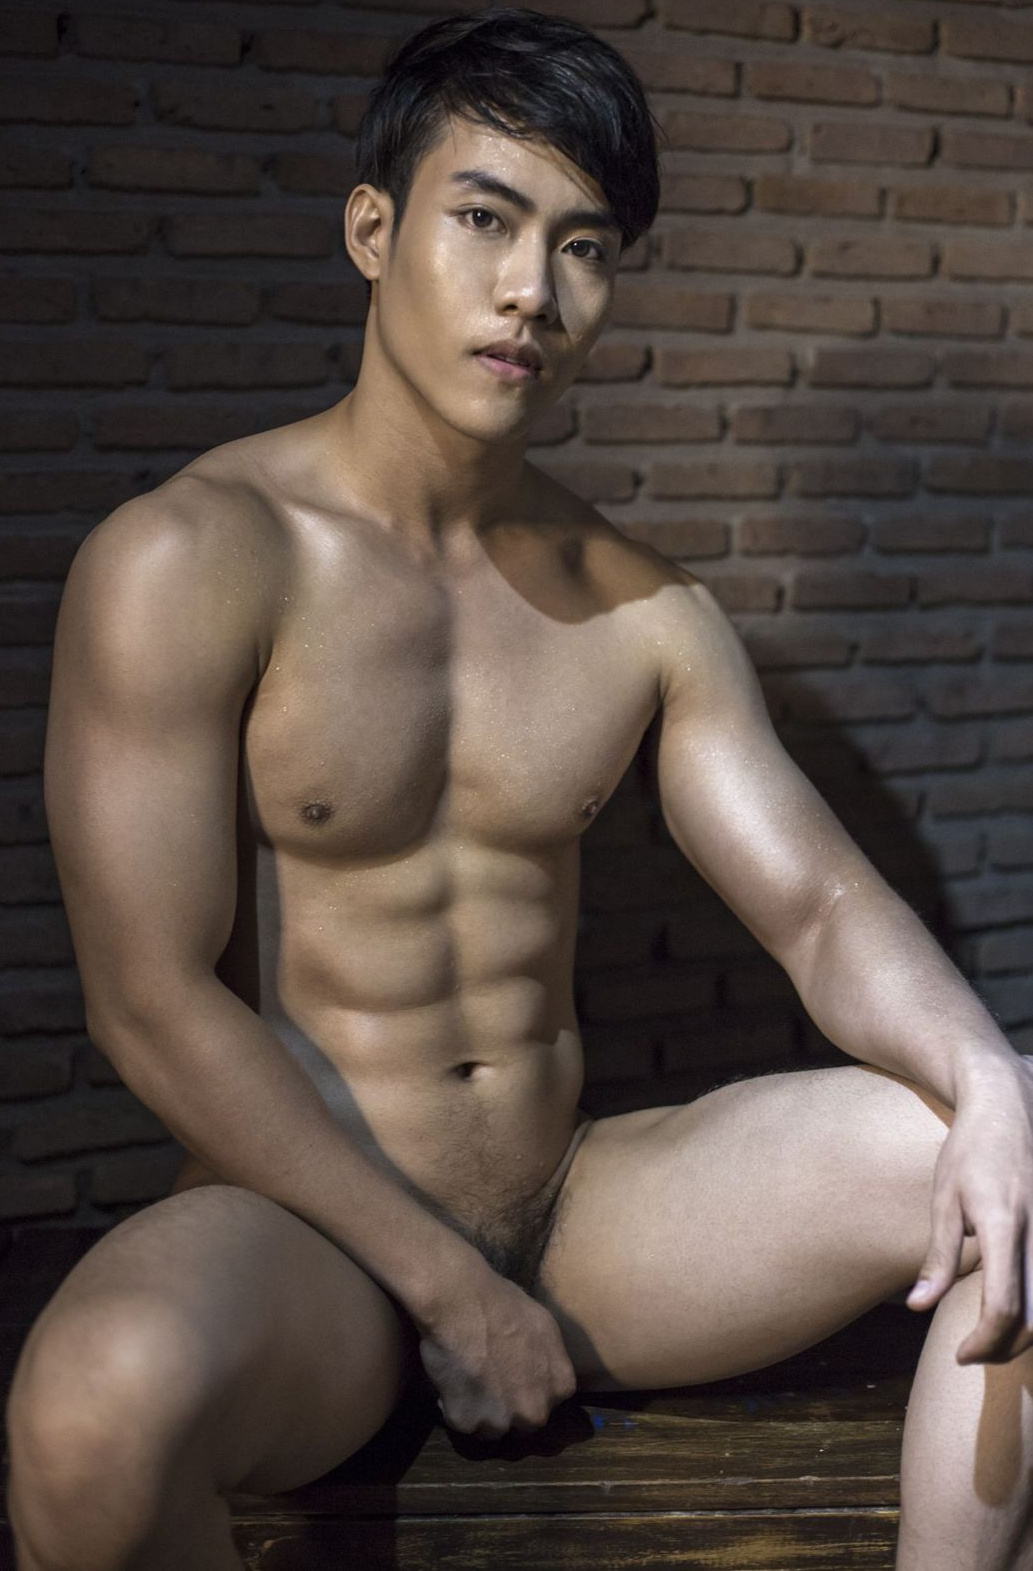 asian-gay-photo-model-08